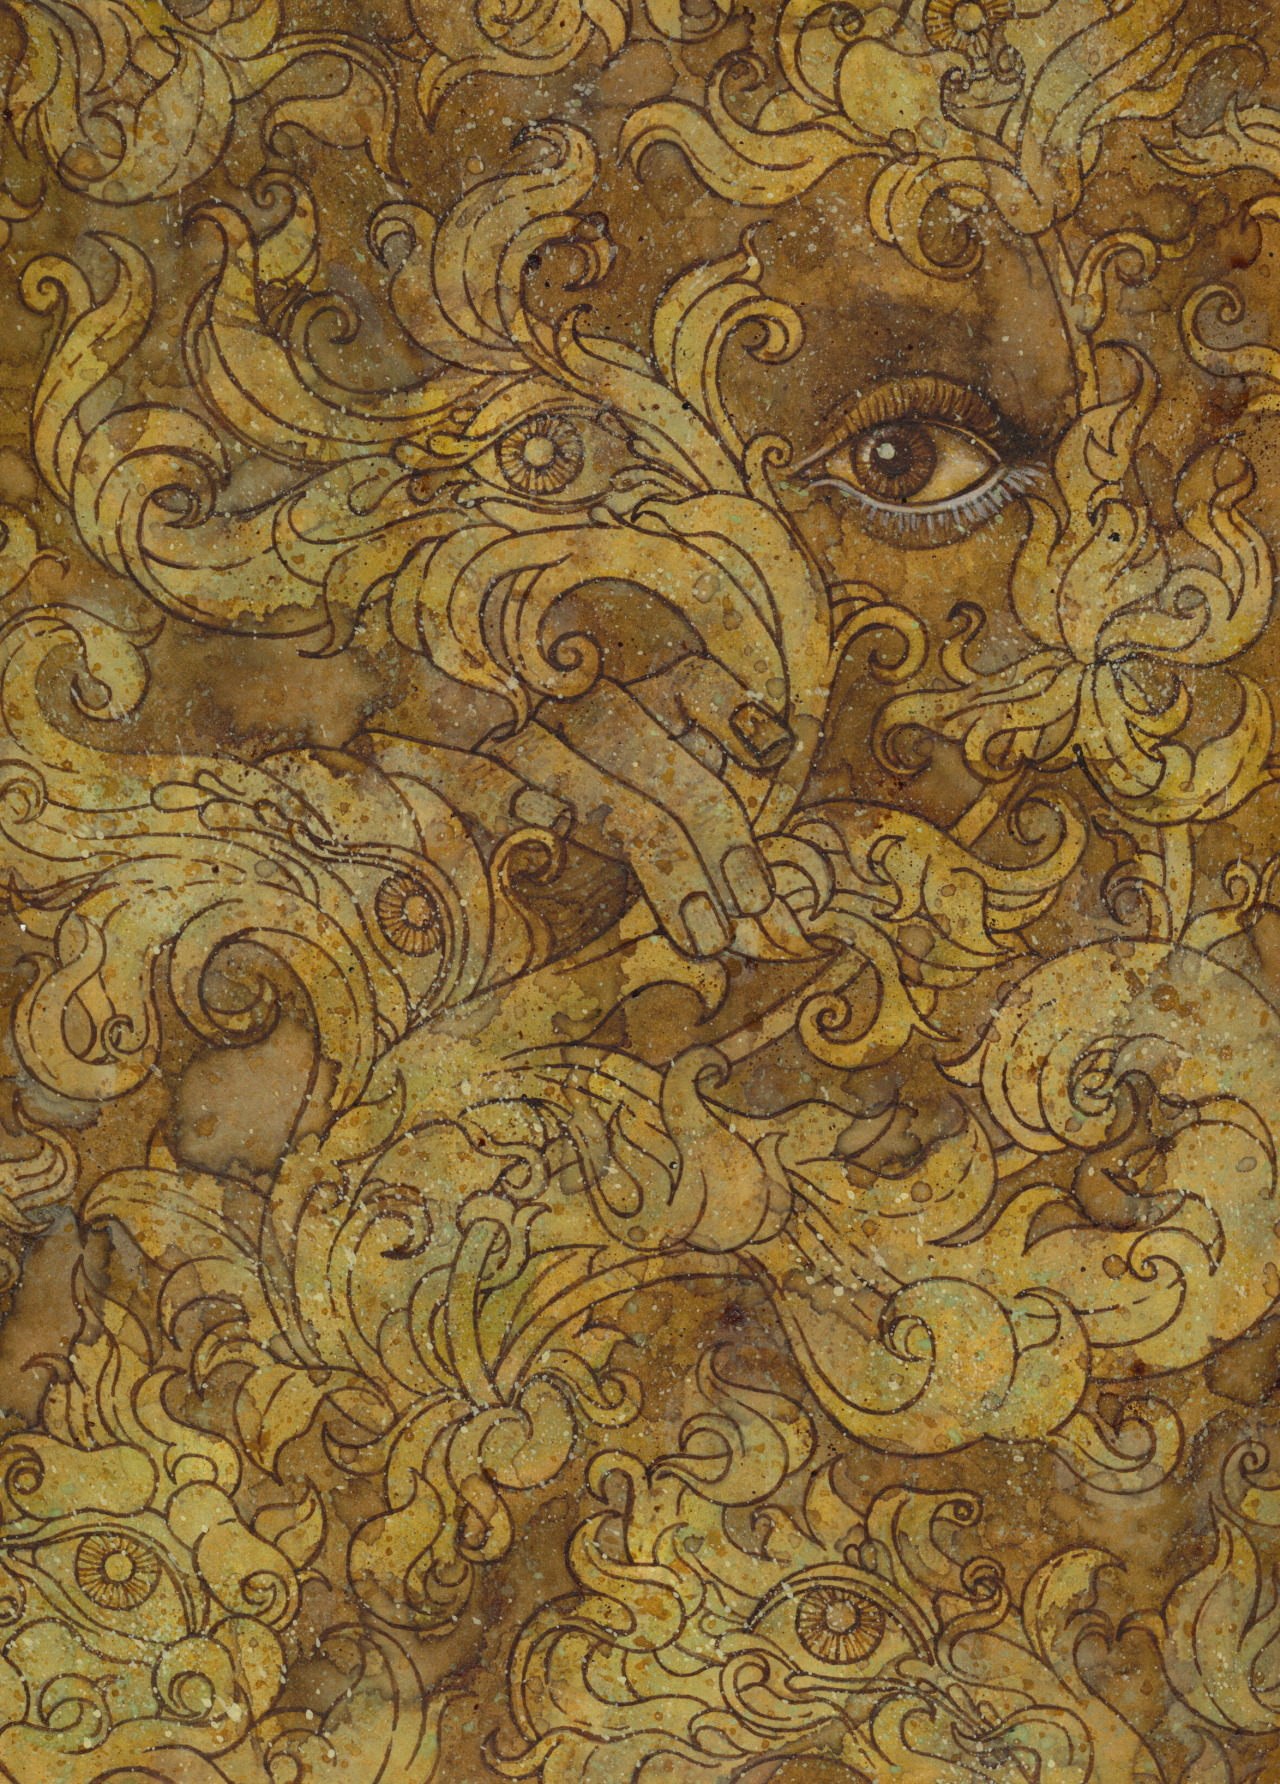 esther coonfield — The Yellow Wallpaper The Woman In the Wall